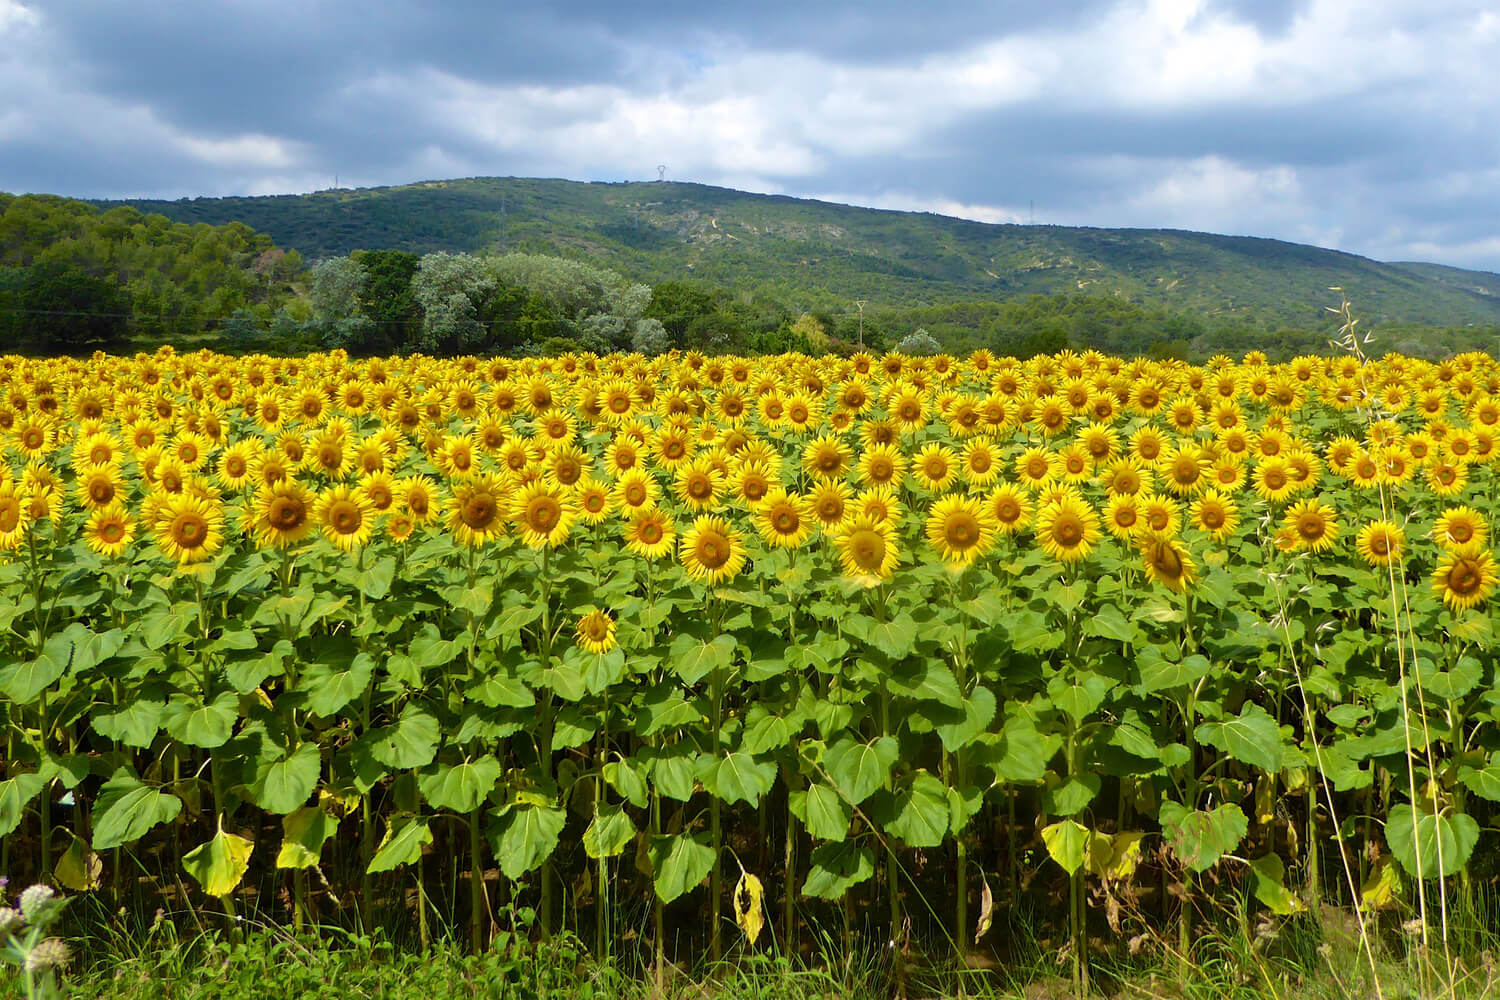 The sunflower field that inspired the title for the novel, The Sunflower Field